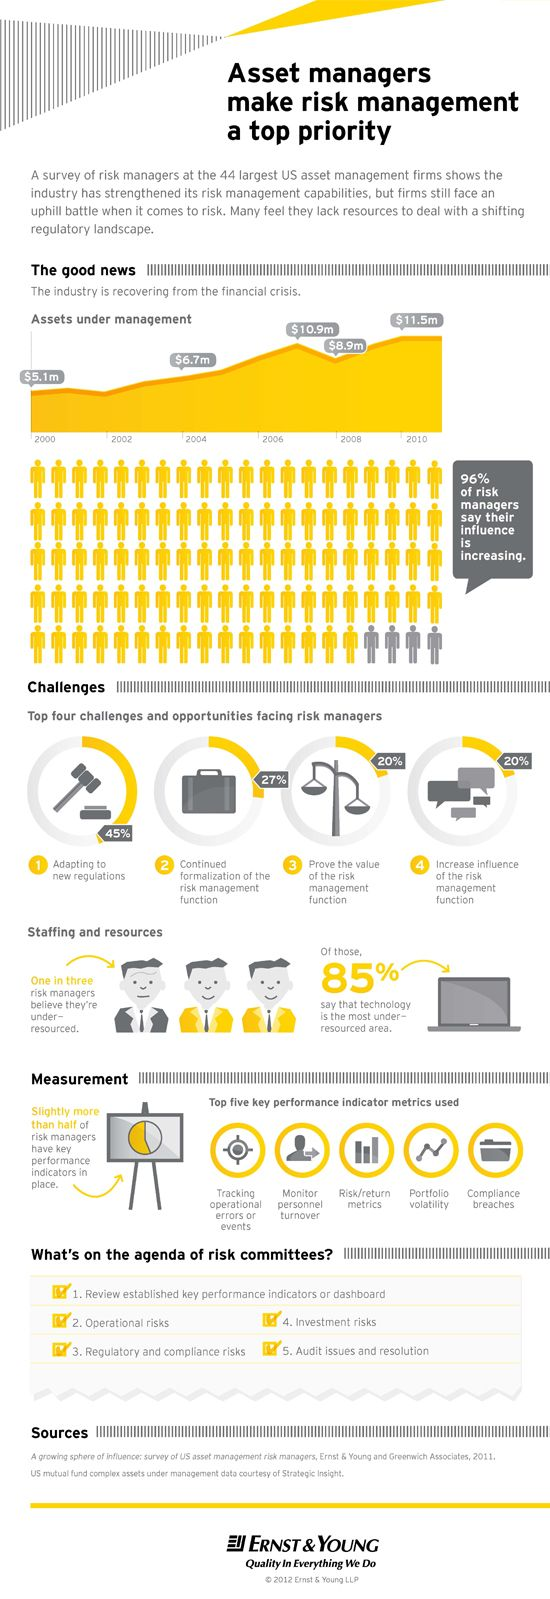 2012 US asset management risk survey – Ernst & Young – Asset Management - Ernst & Young - United States